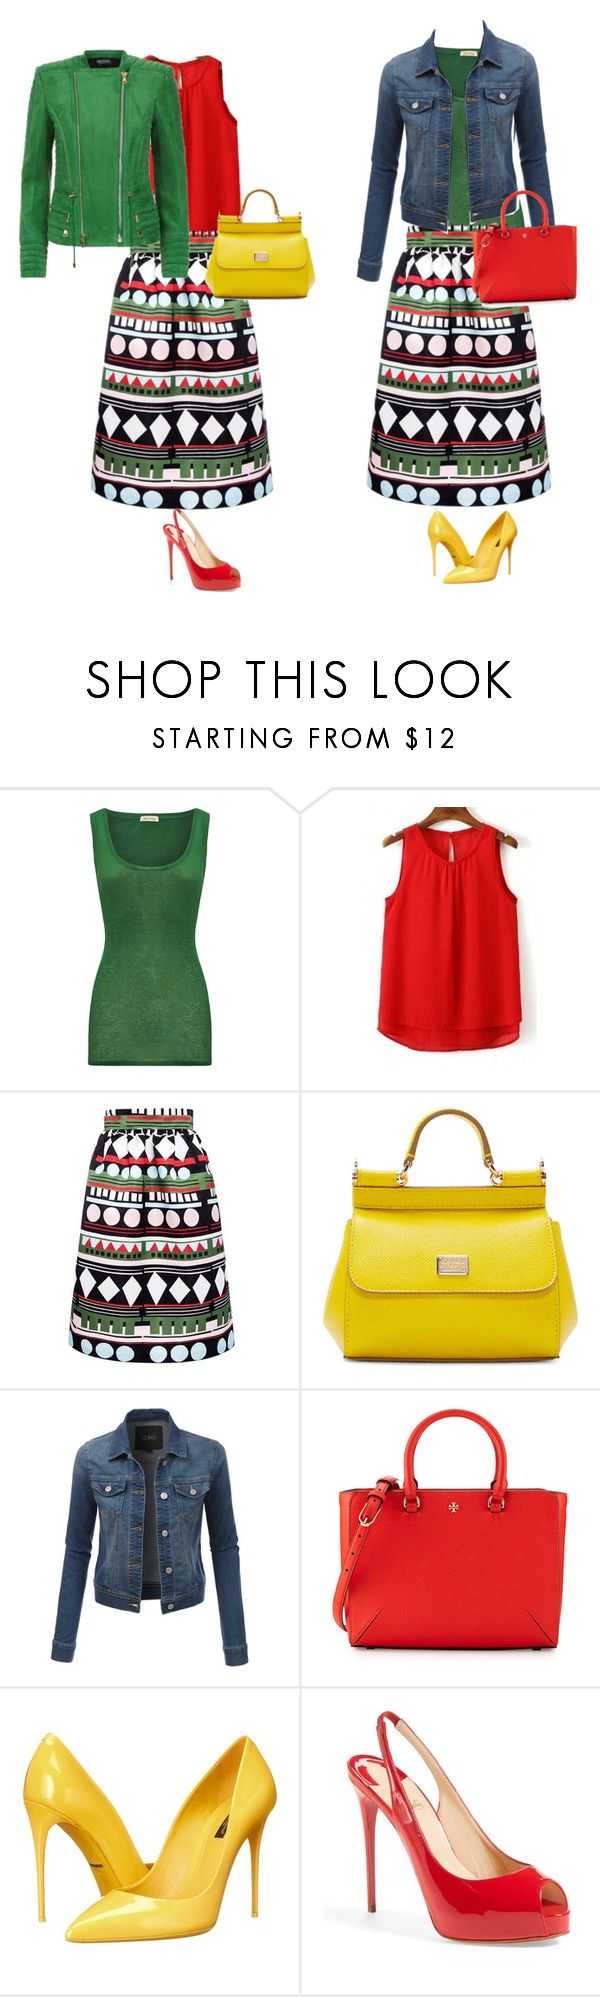 """цветовой контраст 1"" by elenasamsonova on Polyvore featuring American Vintage, Edit, Dolce&Gabbana, LE3NO, Tory Burch, Christian Louboutin and Balmain"